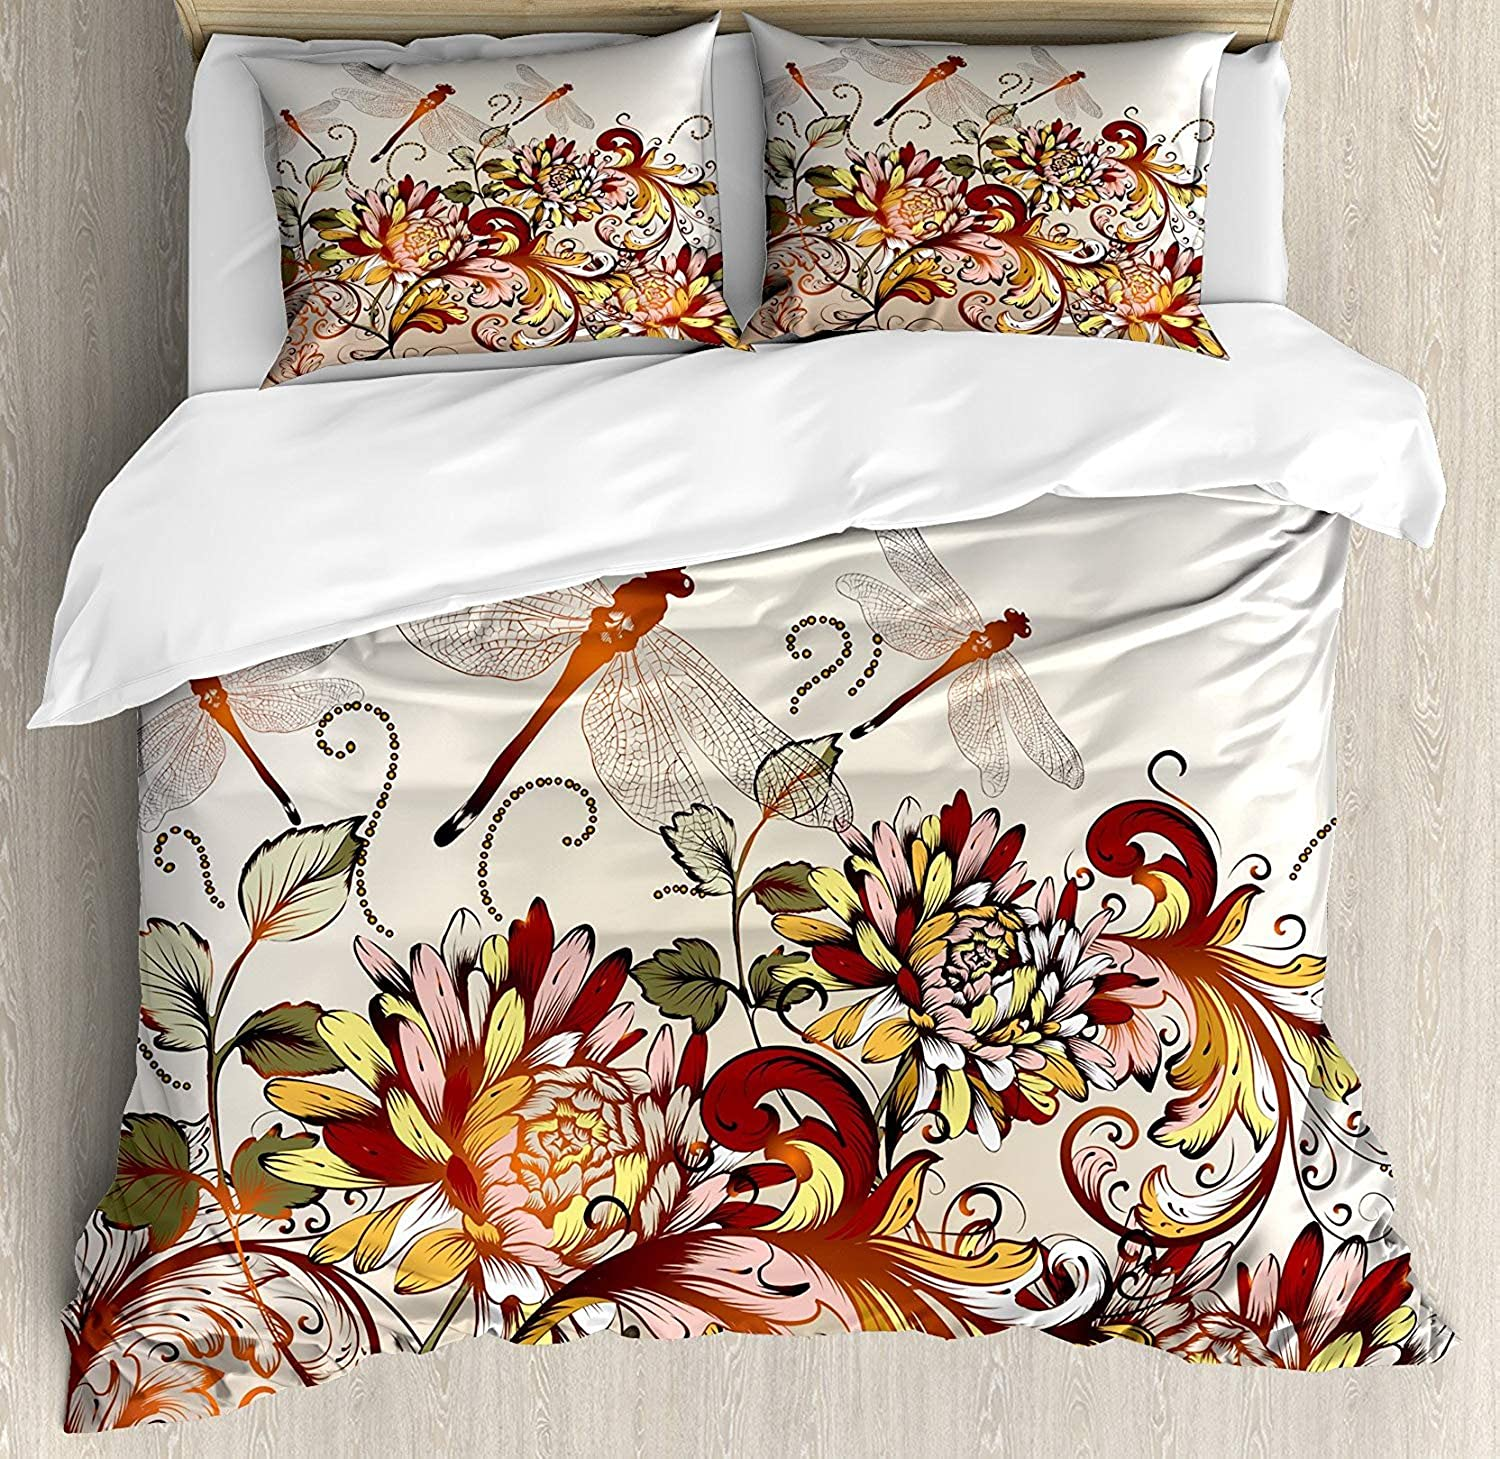 OxOHome Spring Bedding Sets Flower Field Foliage Dragonflies Magical Season Shabby Classic Leaves Pattern Duvet Cover Sets Full Bedding Comforter Cover Sets Soft Bedding Collections